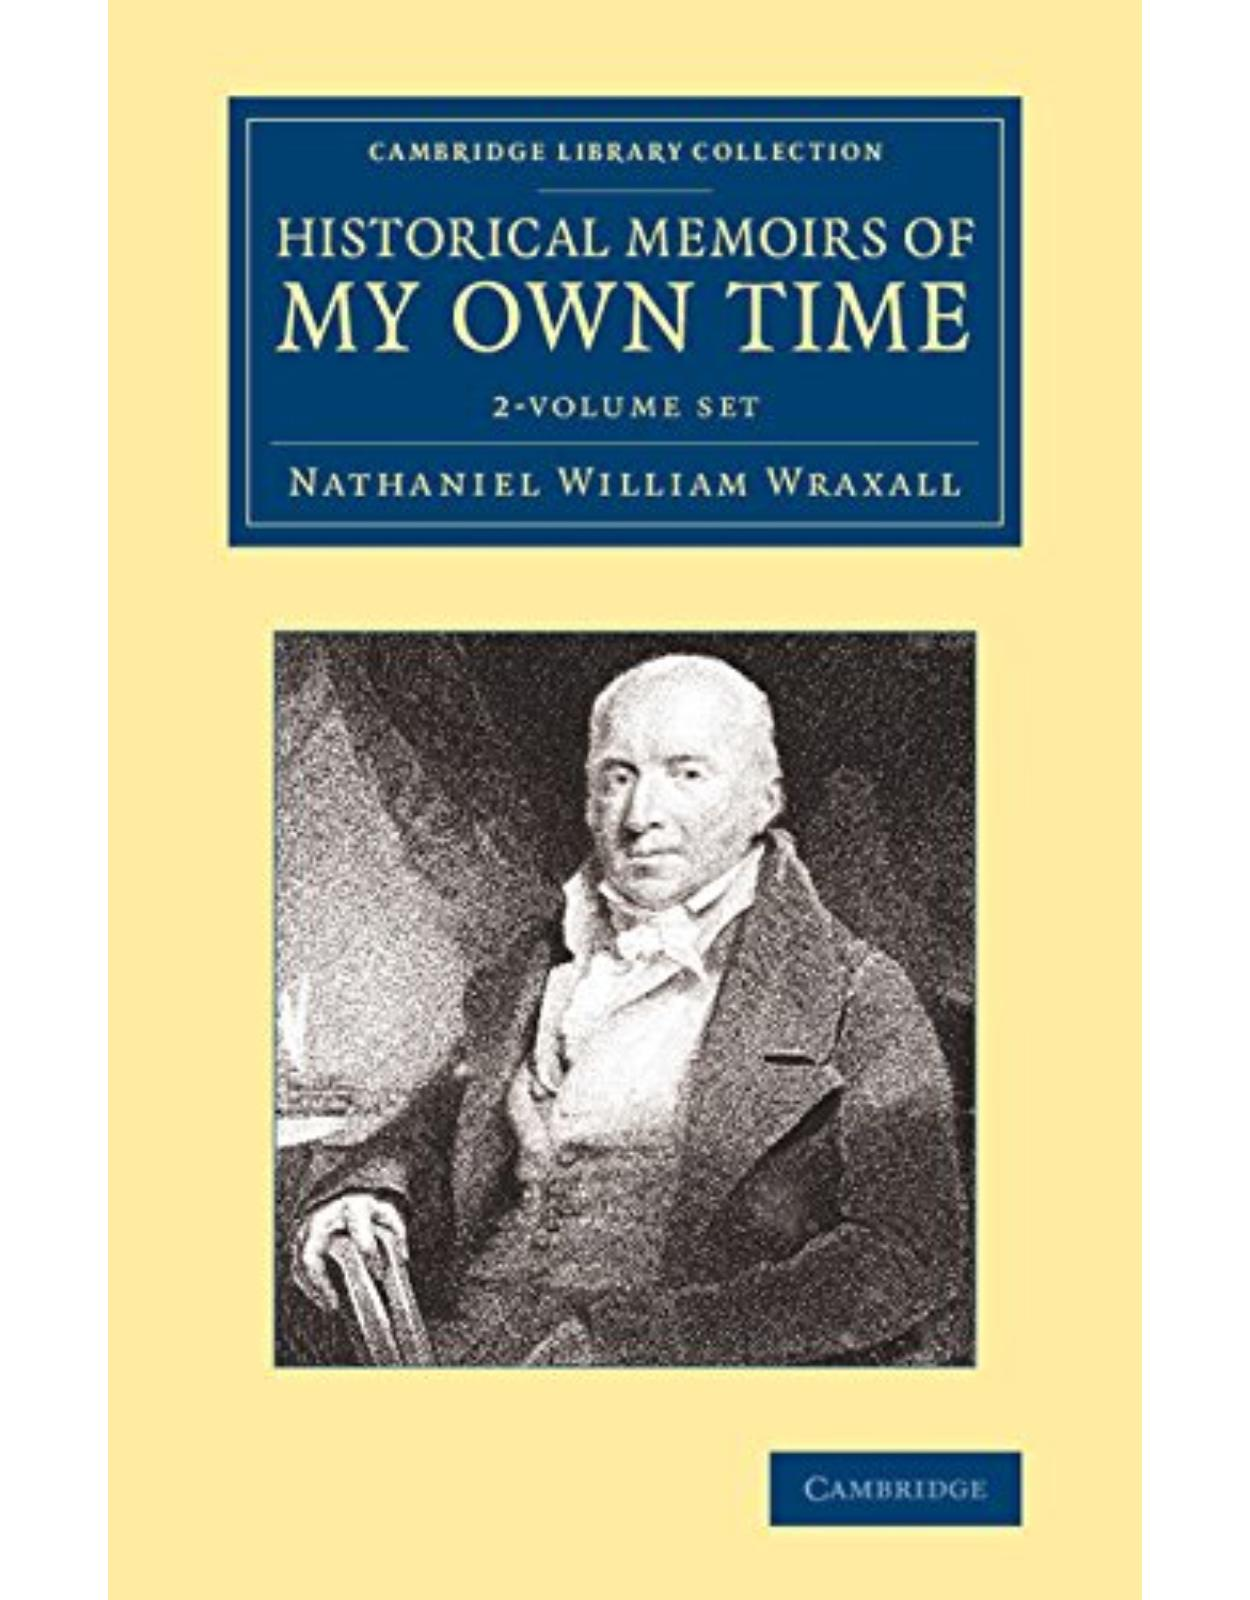 Historical Memoirs of my Own Time 2 Volume Set (Cambridge Library Collection - British & Irish History, 17th & 18th Centuries)